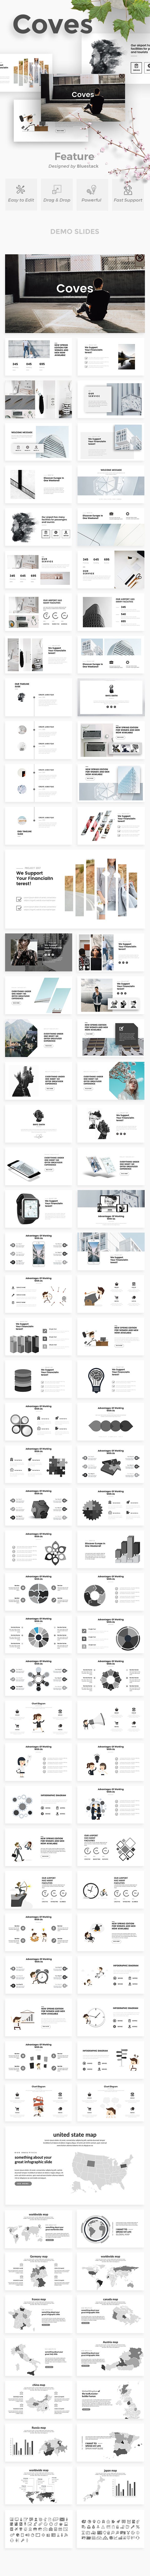 Coves Creative Powerpoint Template - Creative PowerPoint Templates